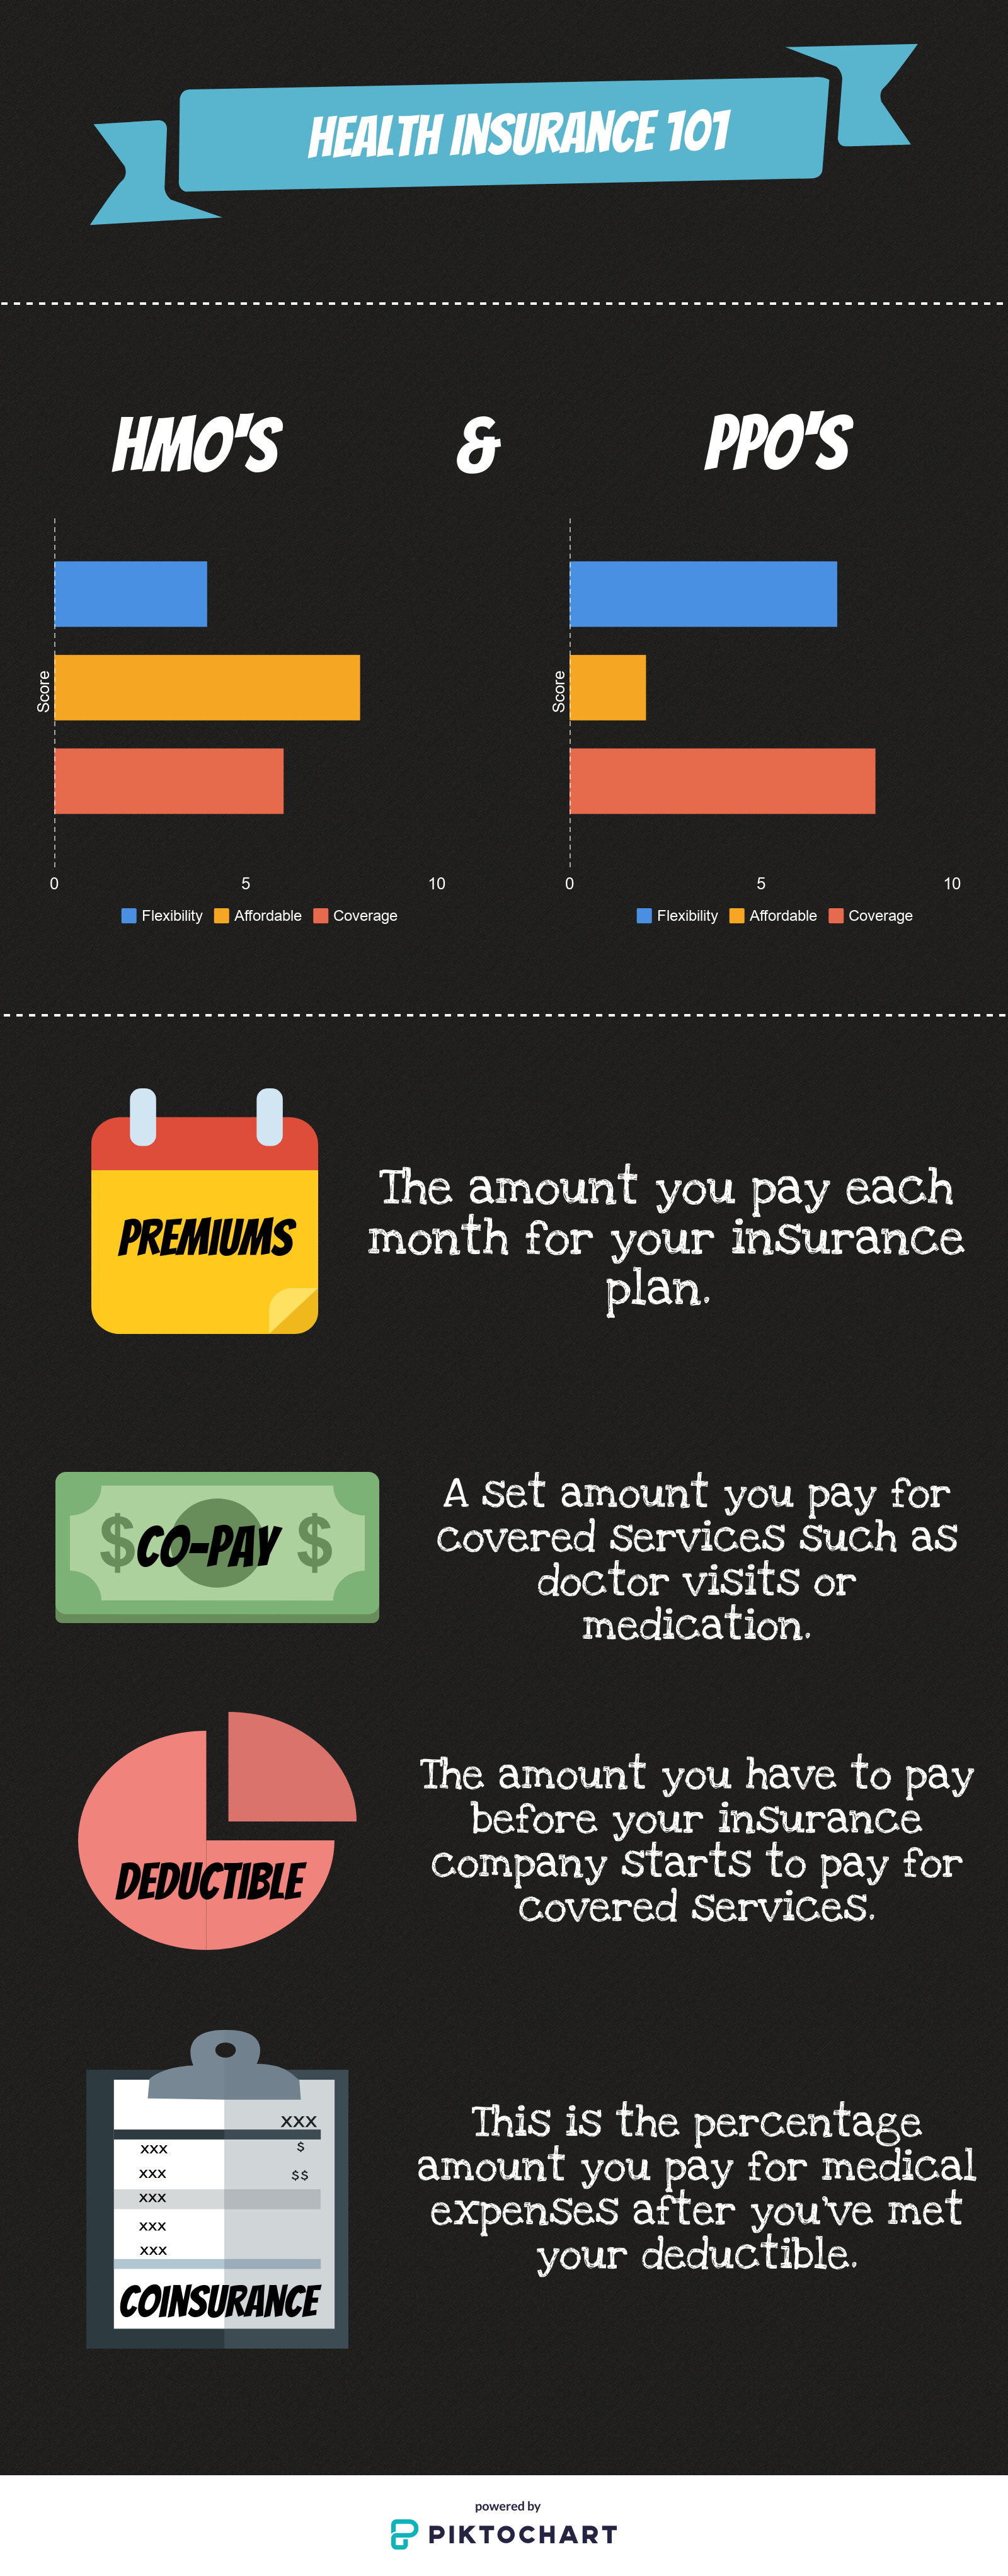 Common health insurance terms that every individual should know before choosing a plan.